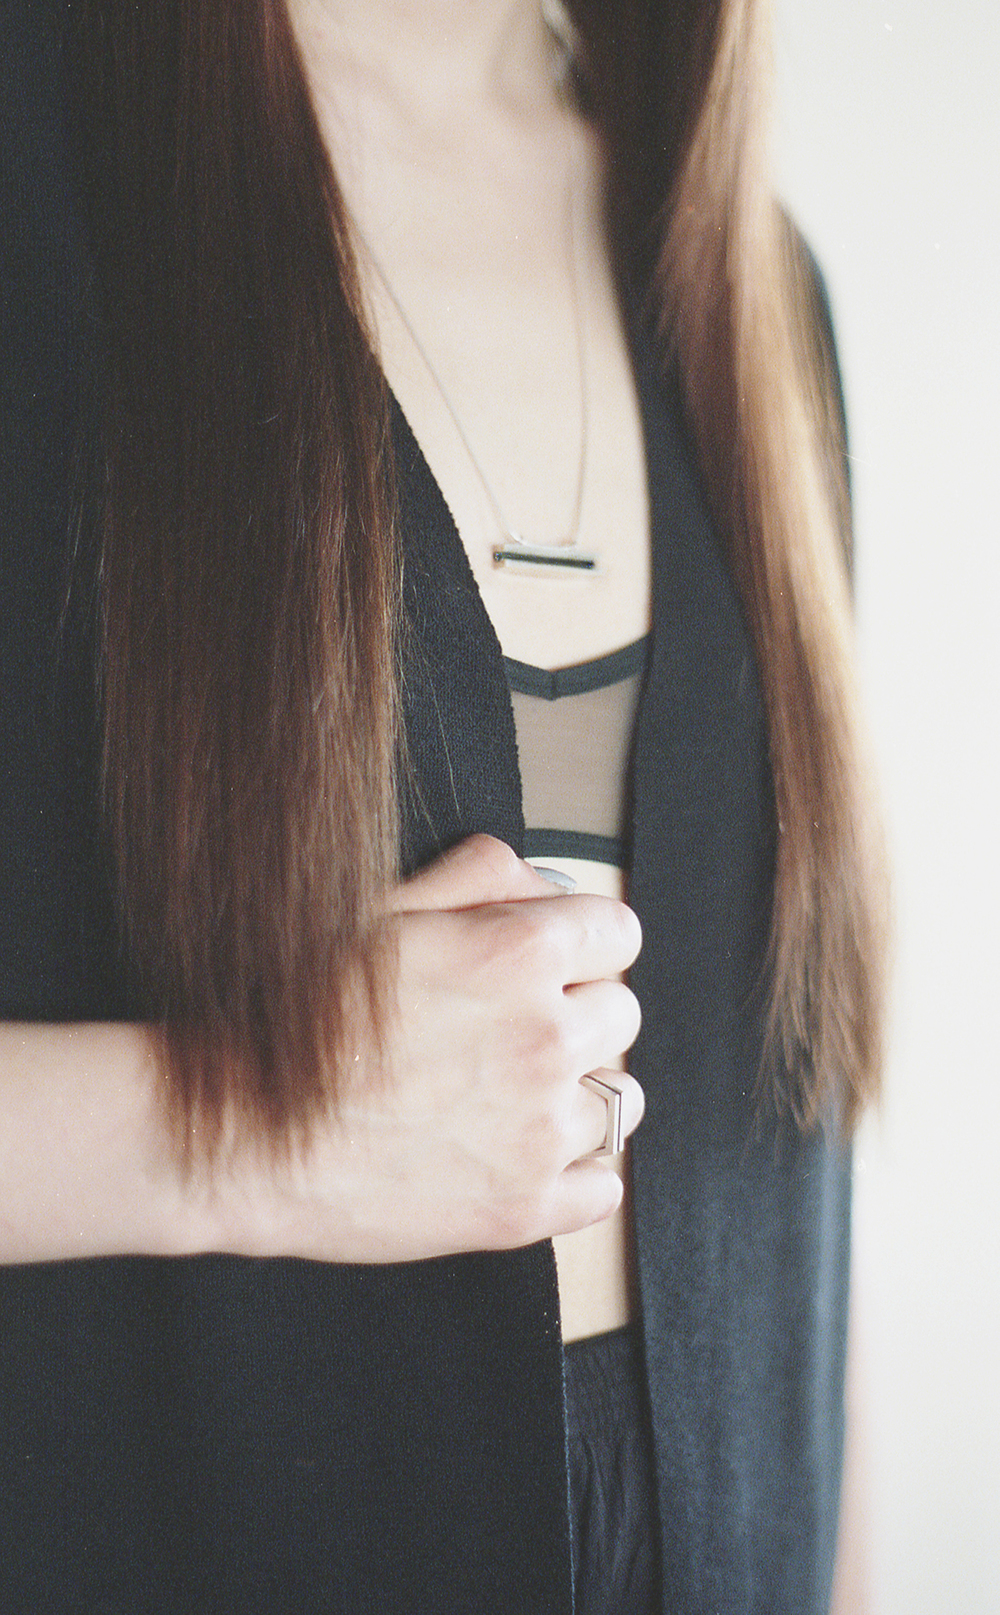 Arc Jewellery - Vacancy Lookbook - Parallel Necklace and Ring